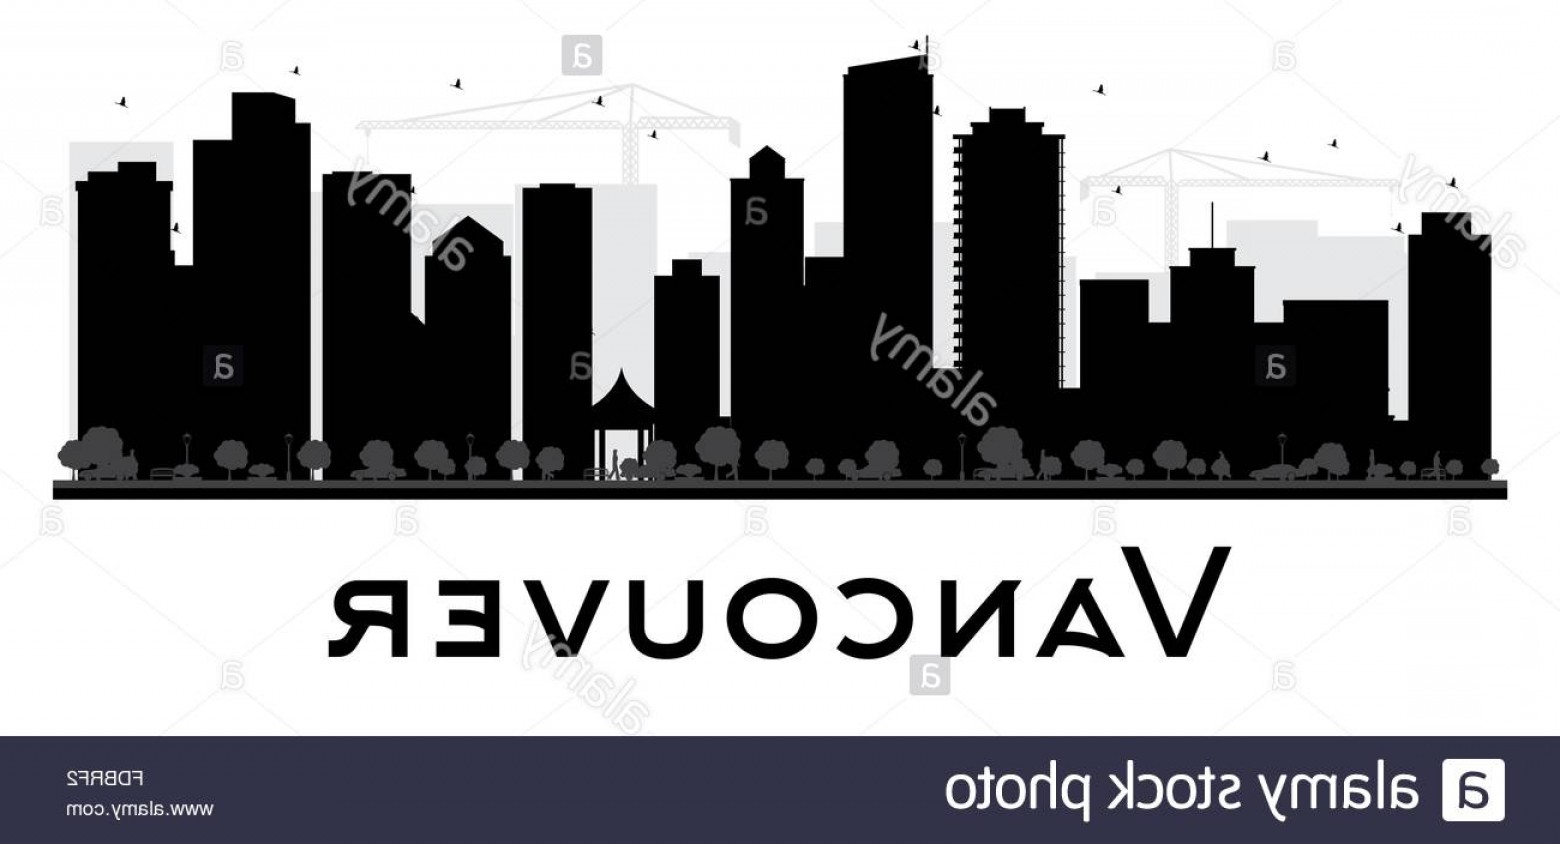 Vancouver Skyline Vector: Stock Photo Vancouver City Skyline Black And White Silhouette Vector Illustration